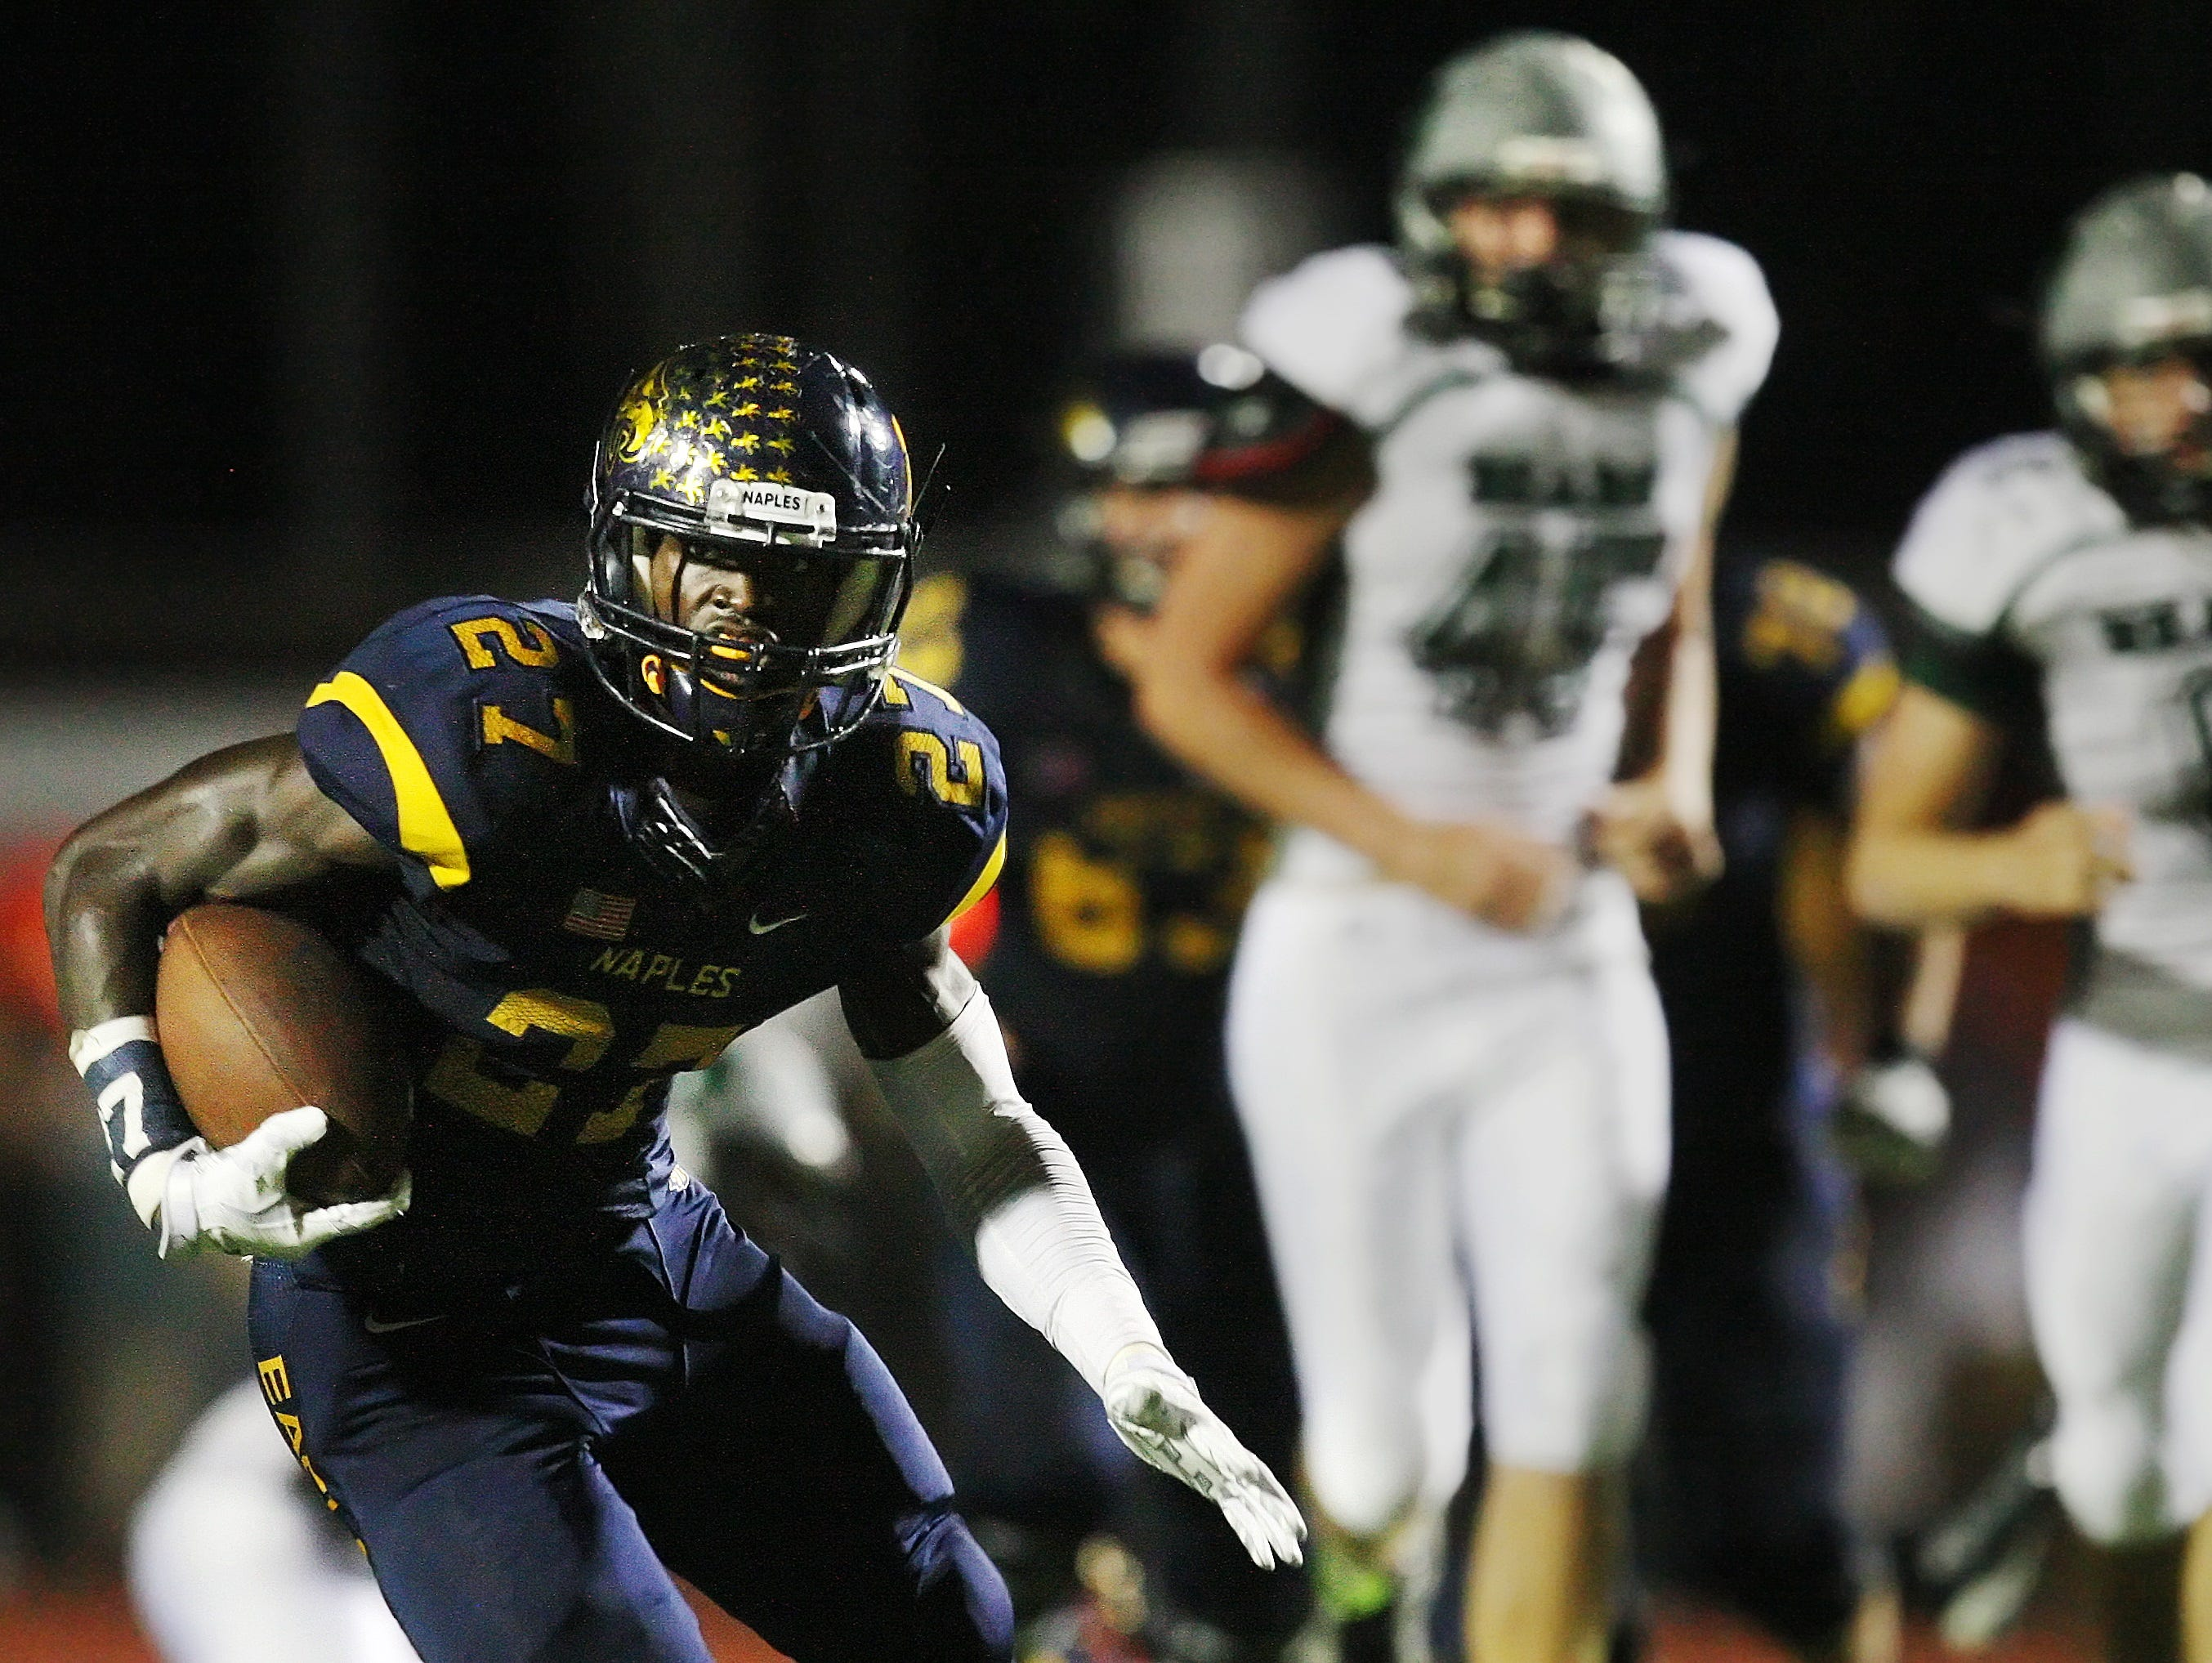 Naples High School's Carlin Fils-Aime has been named the FACA District 18 Player of the Year.